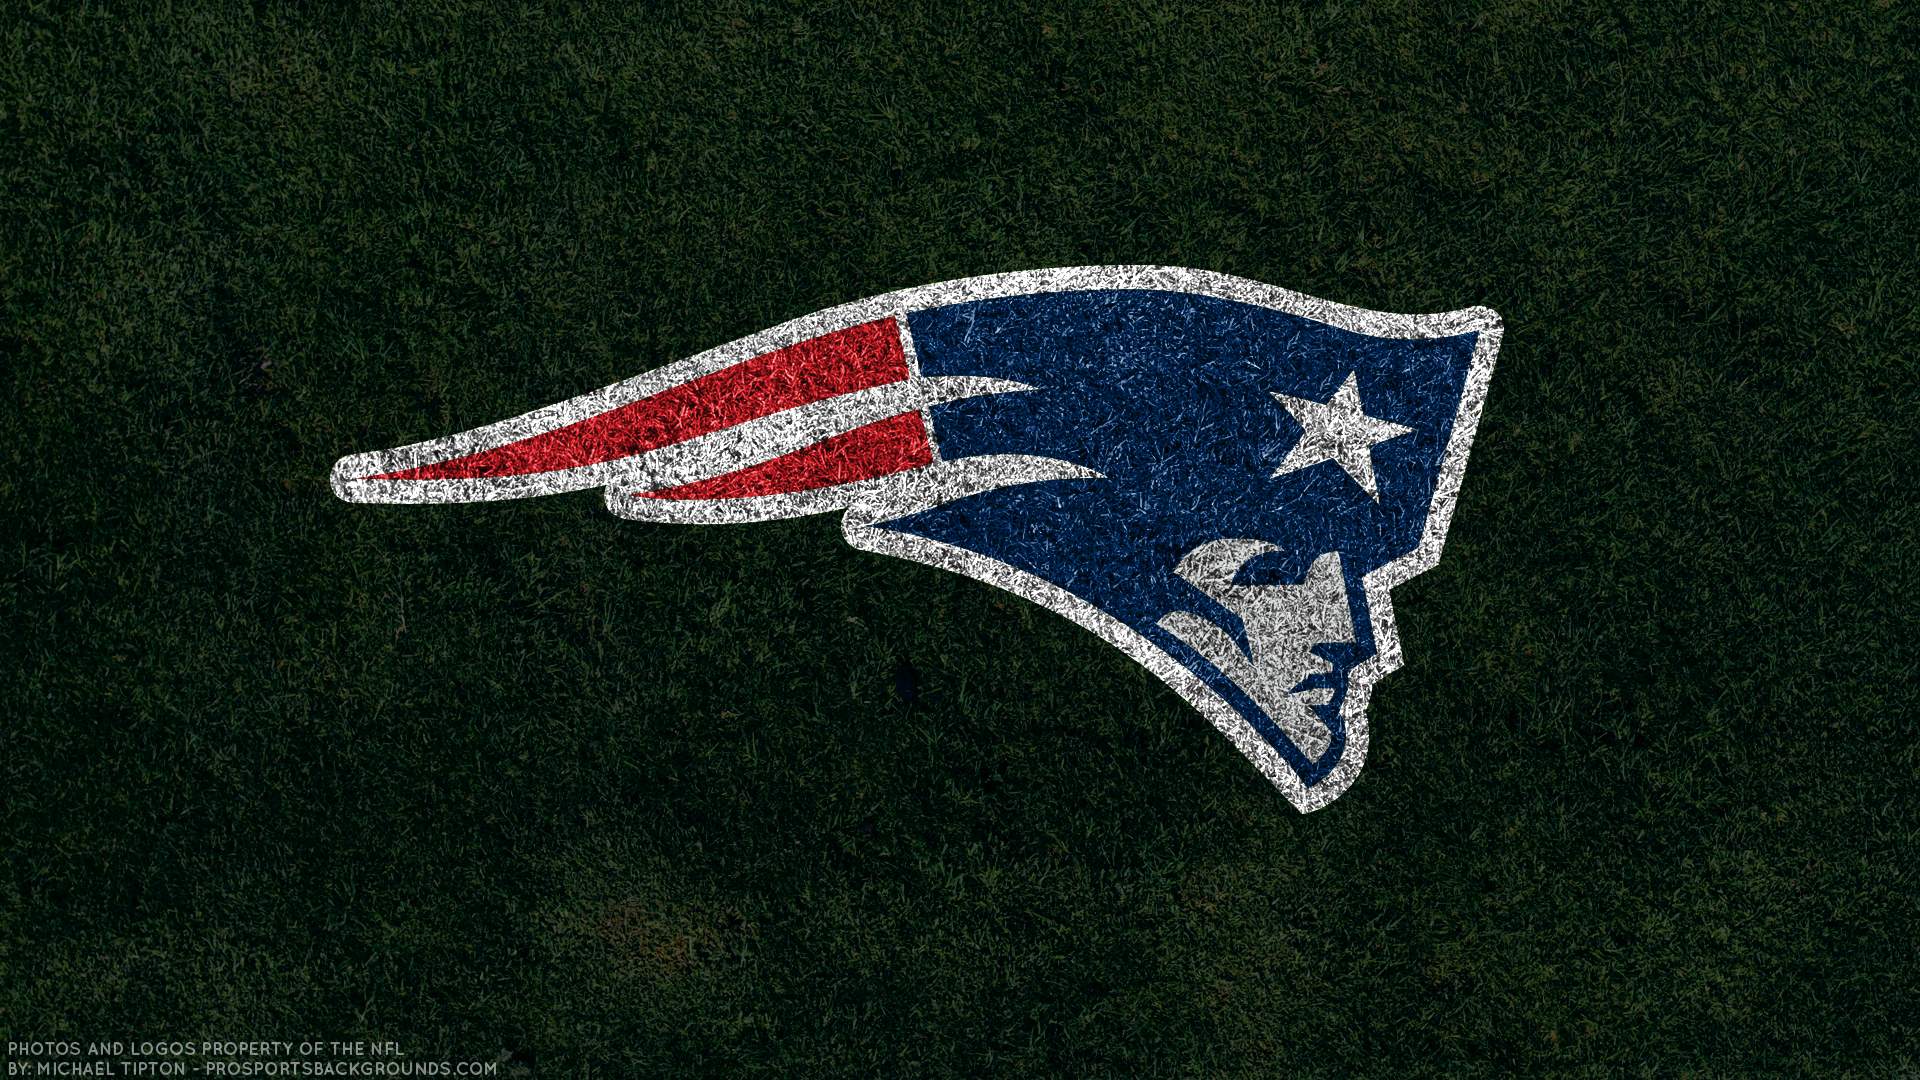 New England Patriots HD Wallpaper | Background Image | 1920x1080 | ID:981401 - Wallpaper Abyss